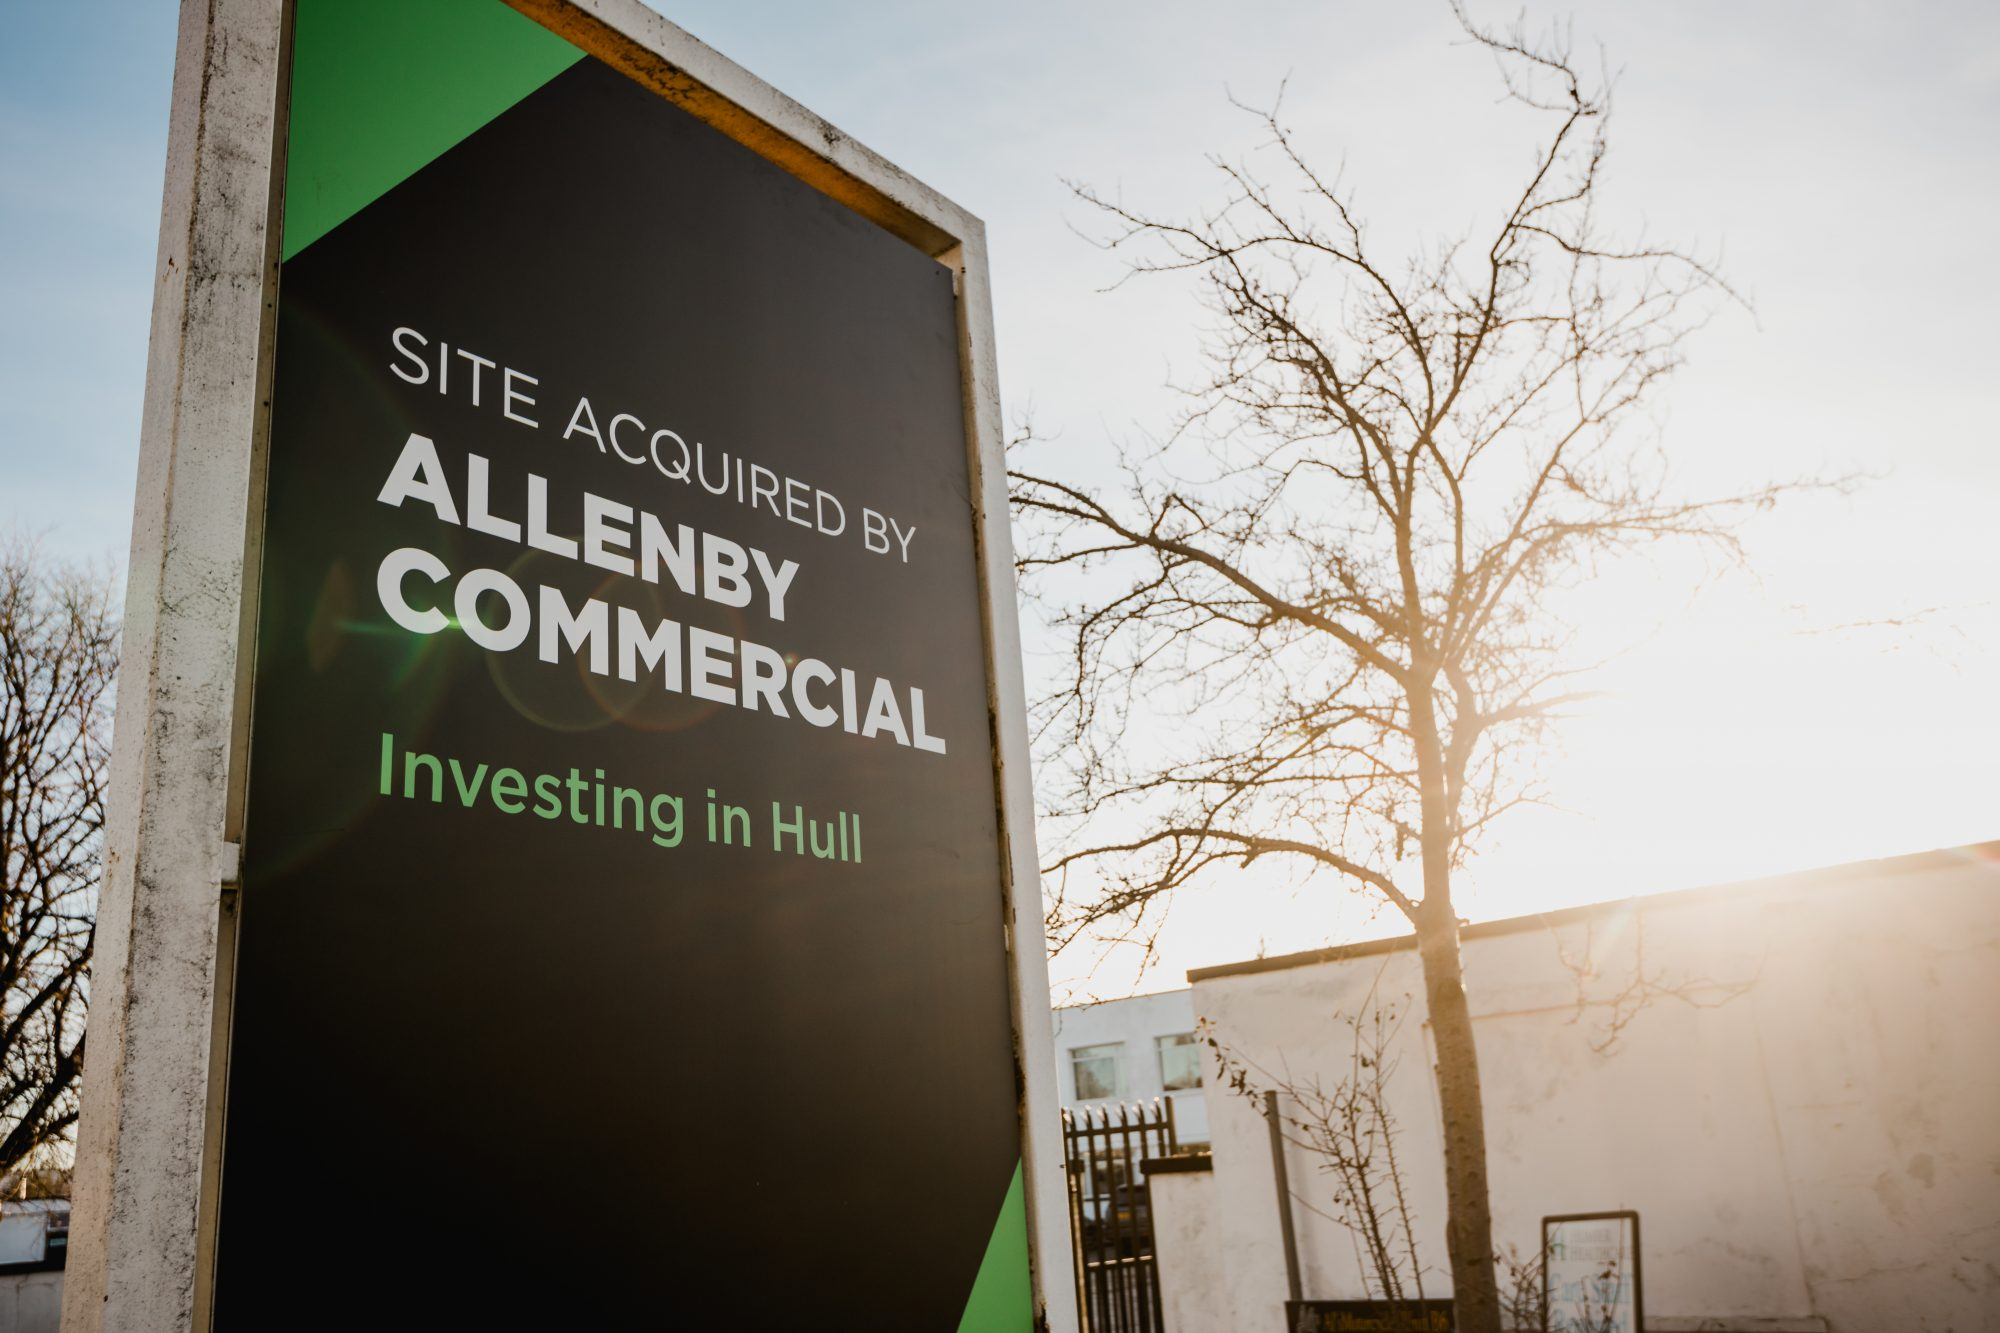 hull business centres, office space hull, commercial property hull